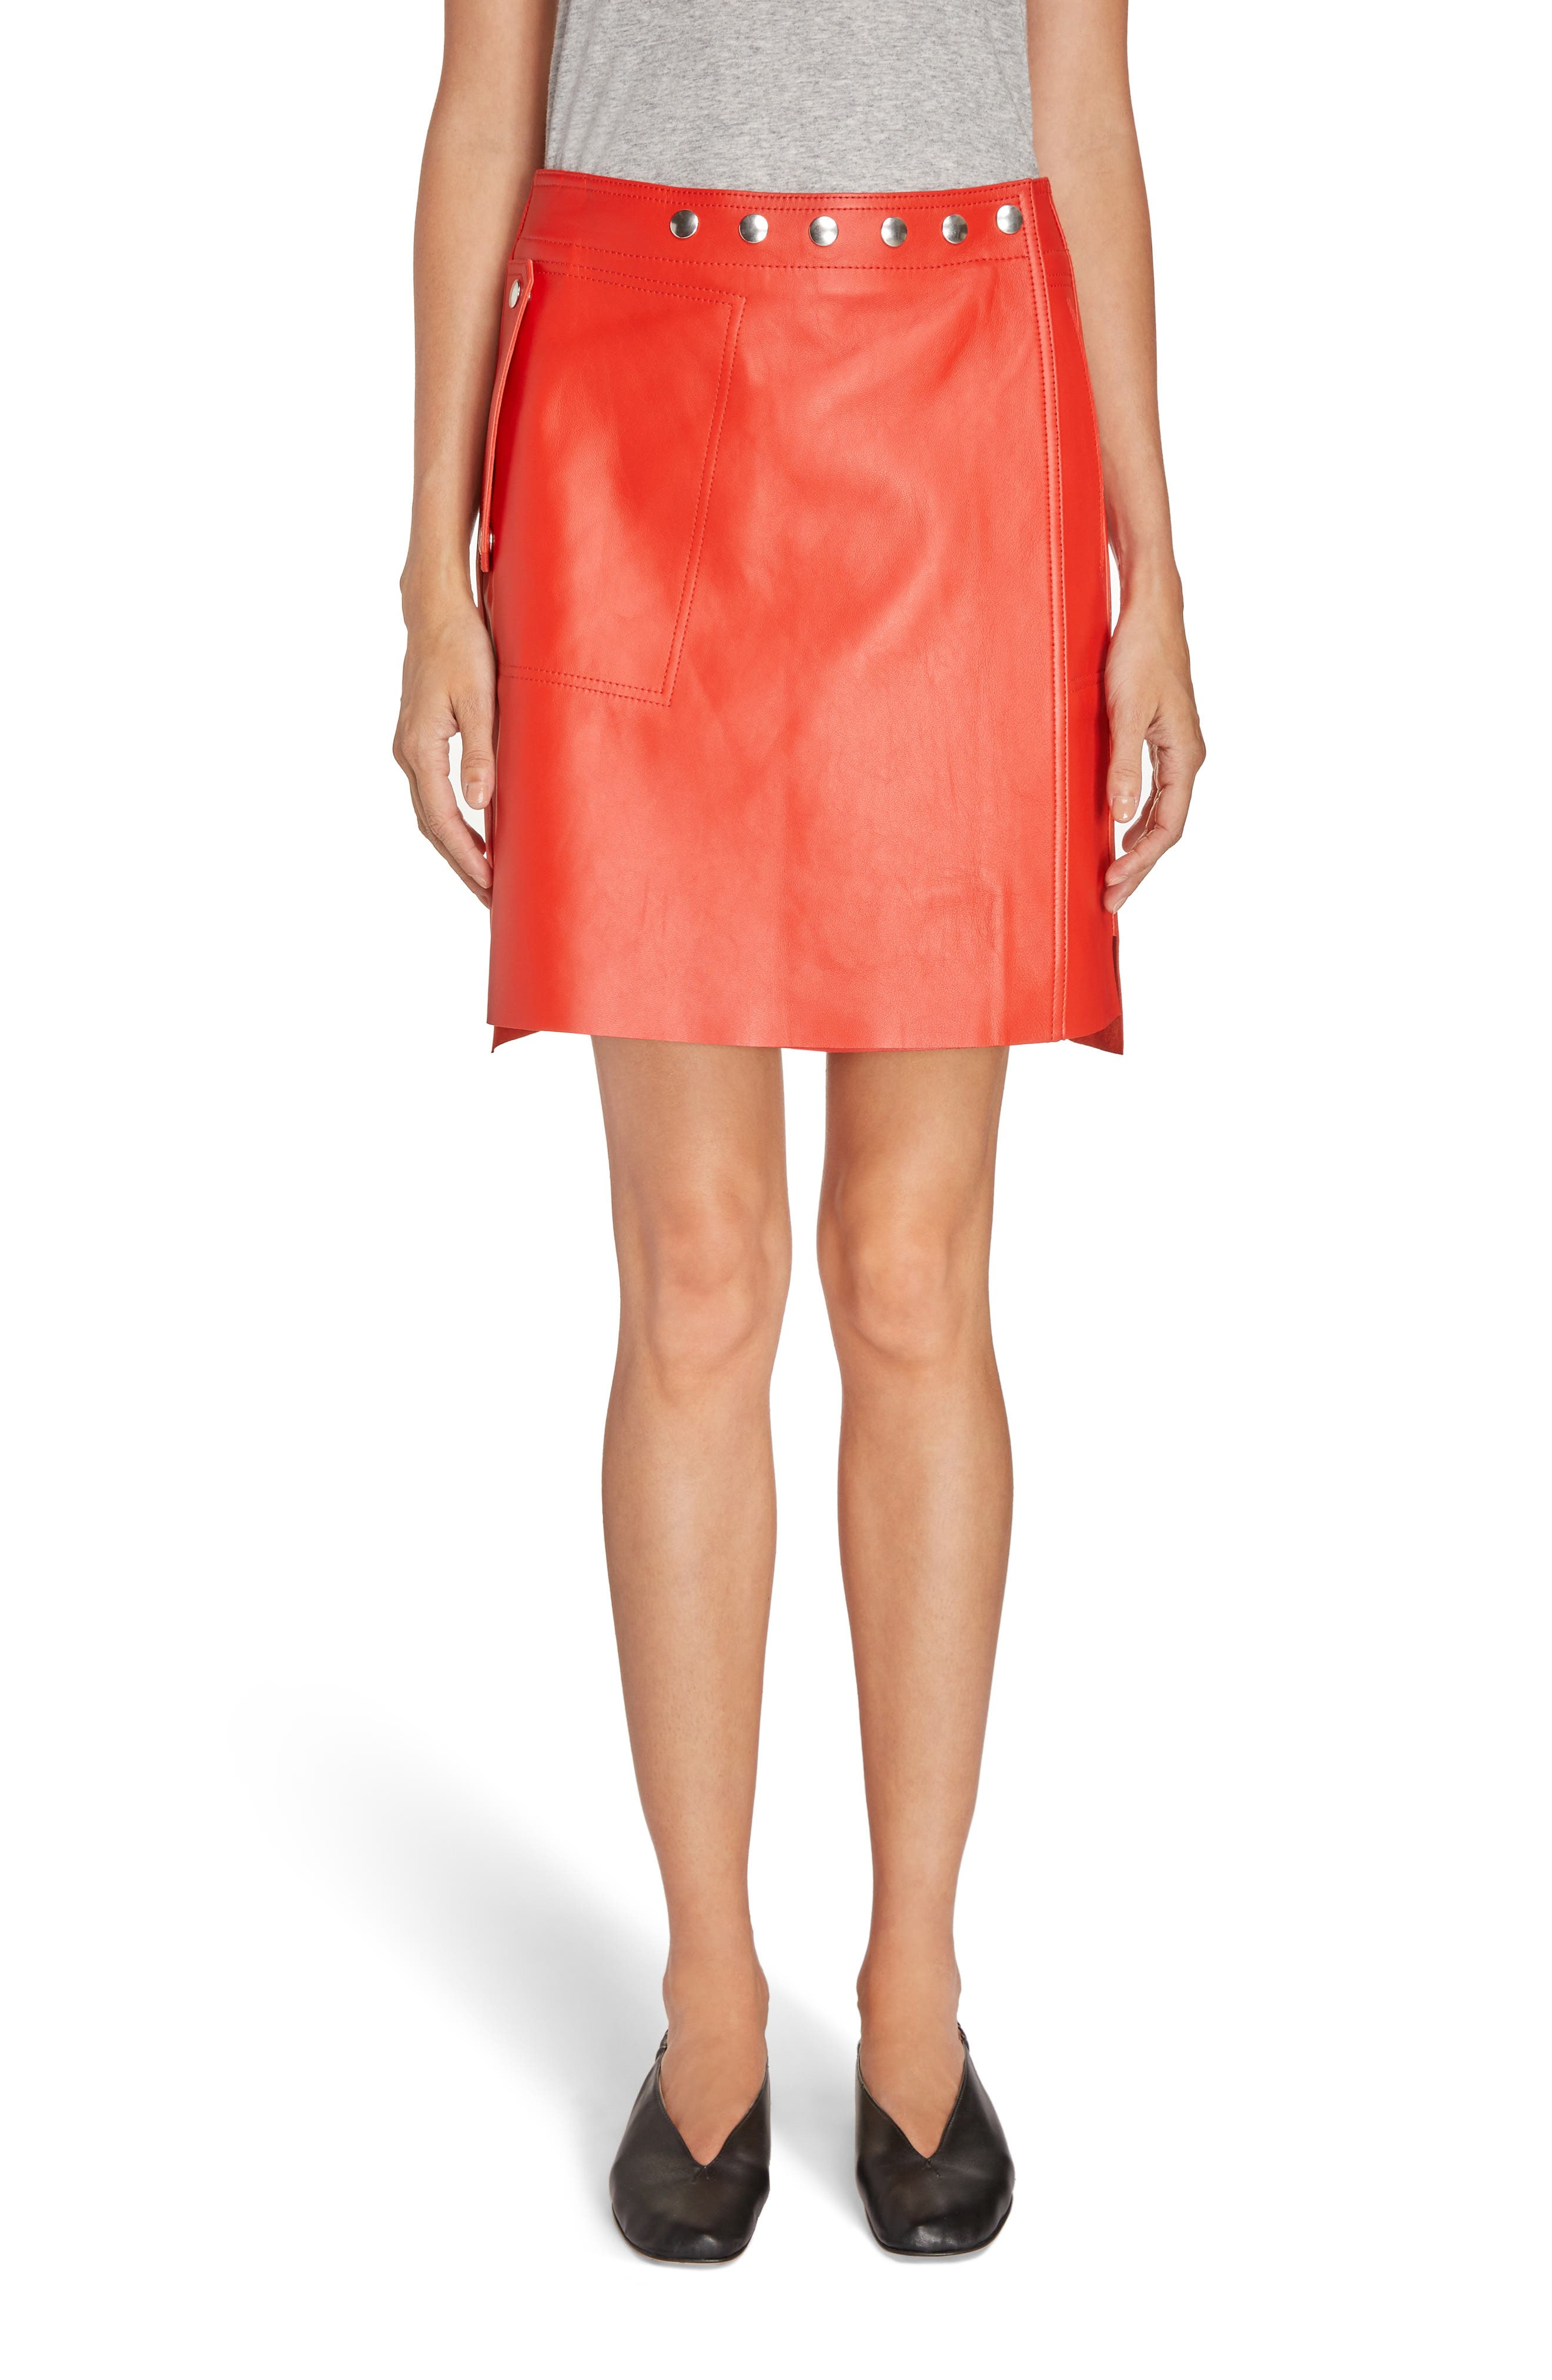 Acne Studios Shirin Leather Miniskirt